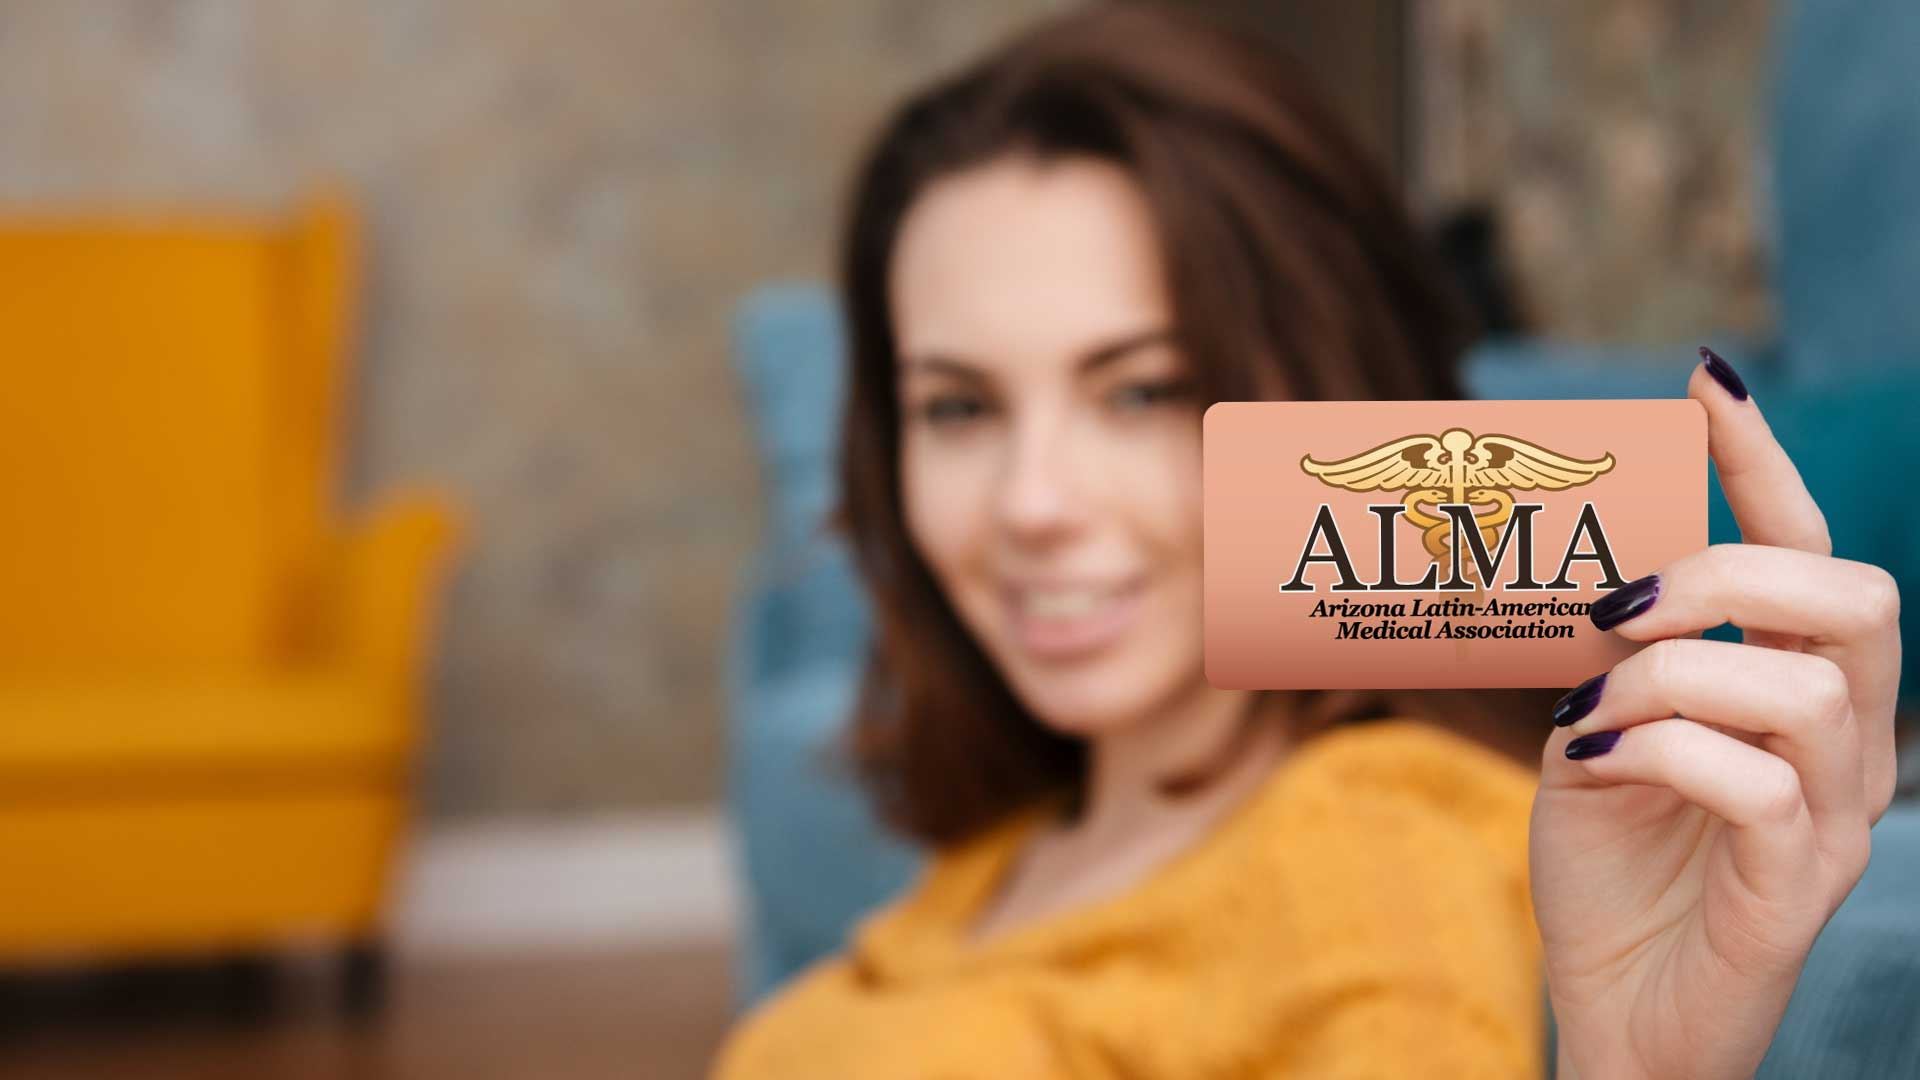 ALMA Network – ALMA Healthcare